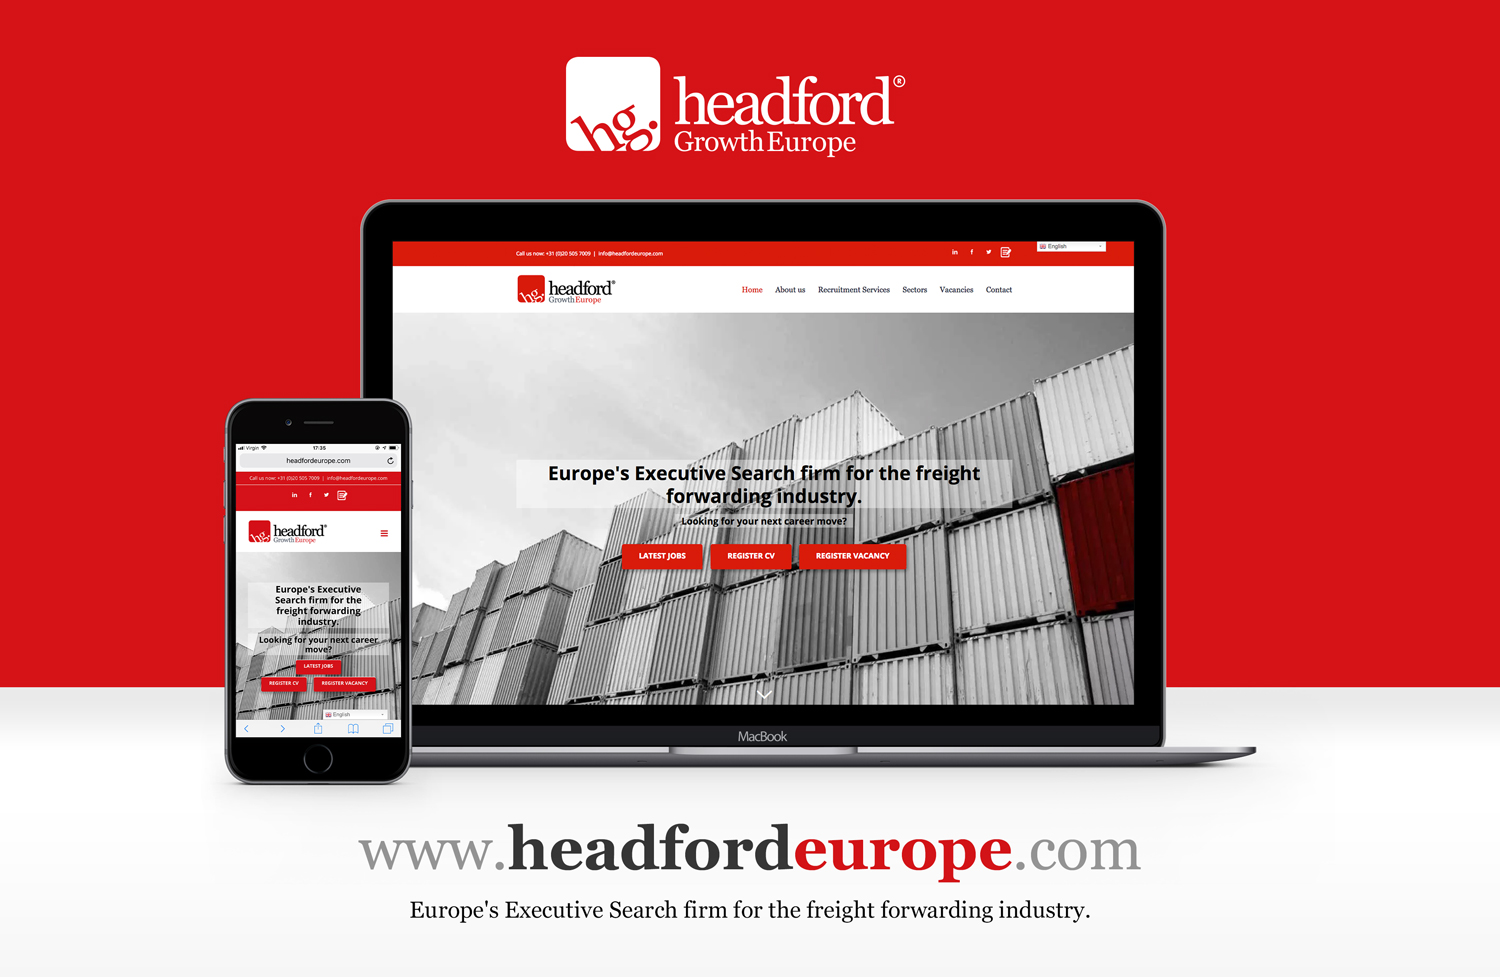 Headford Growth Europe launch new website